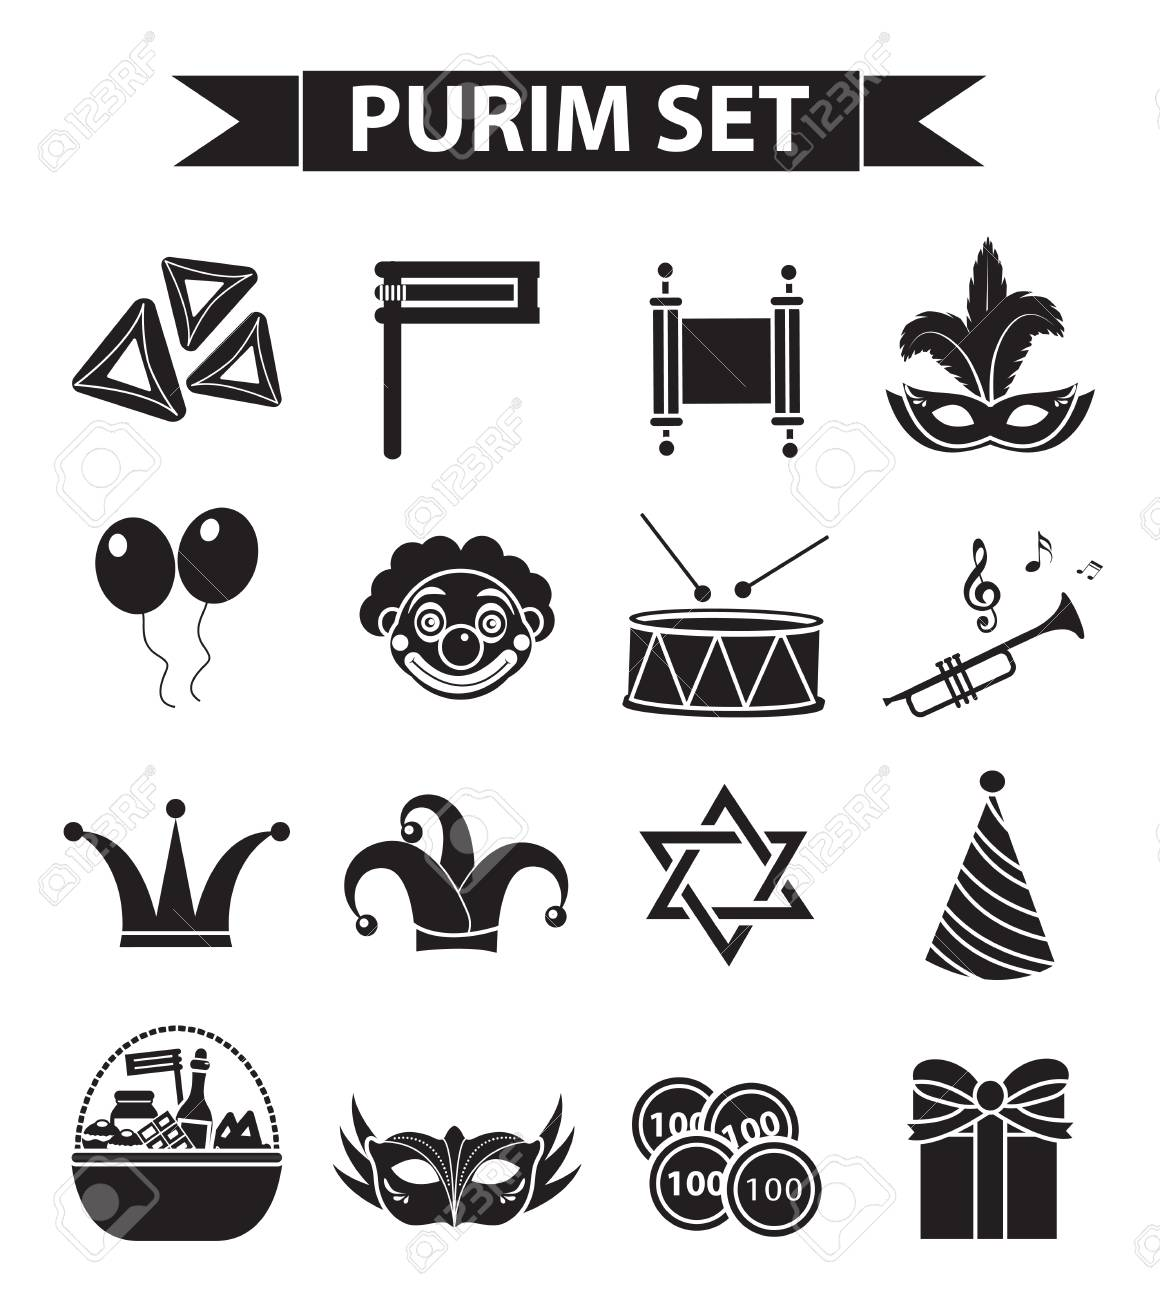 Happy Purim Carnival Icons Set Black Silhouette Style Purim